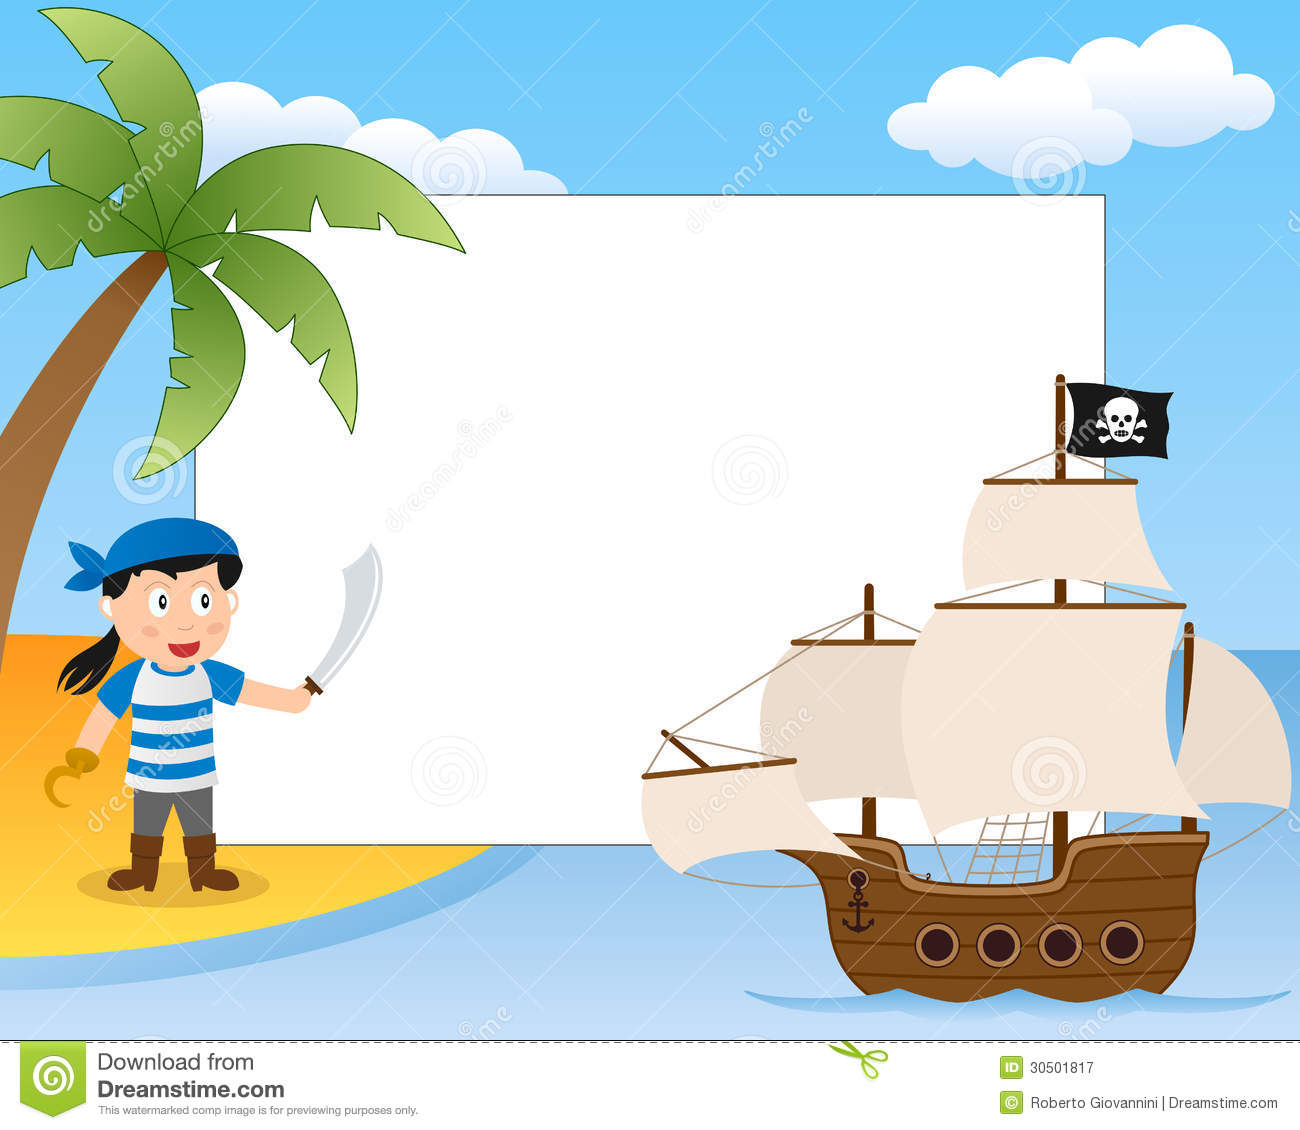 Pirate And Ship Frame Stock Vector Illustration of jolly